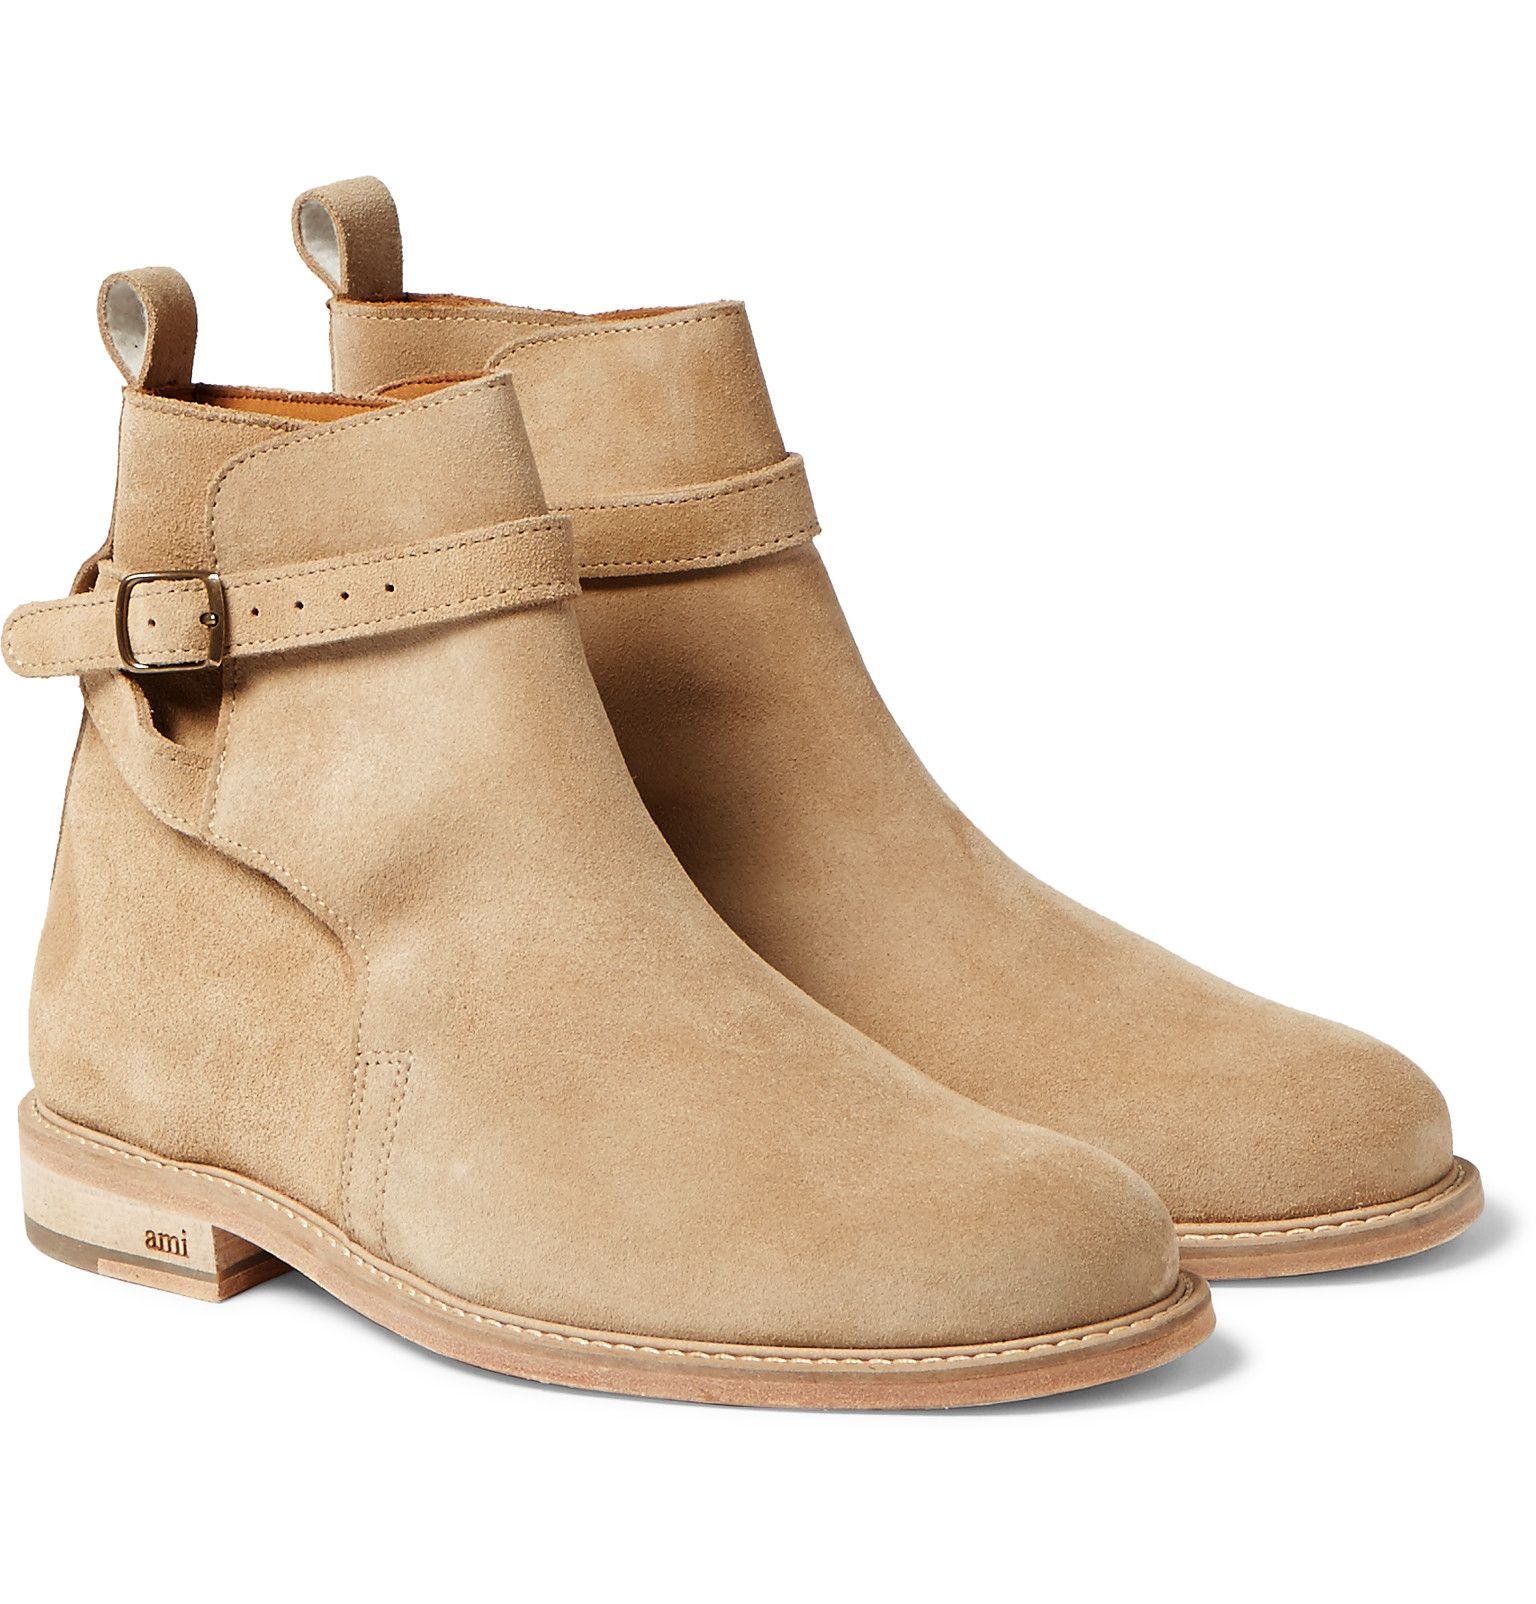 d8381ff5f3b0c AMI - Buckled Suede Boots | Mens Shoes // Online in 2019 | Boots ...